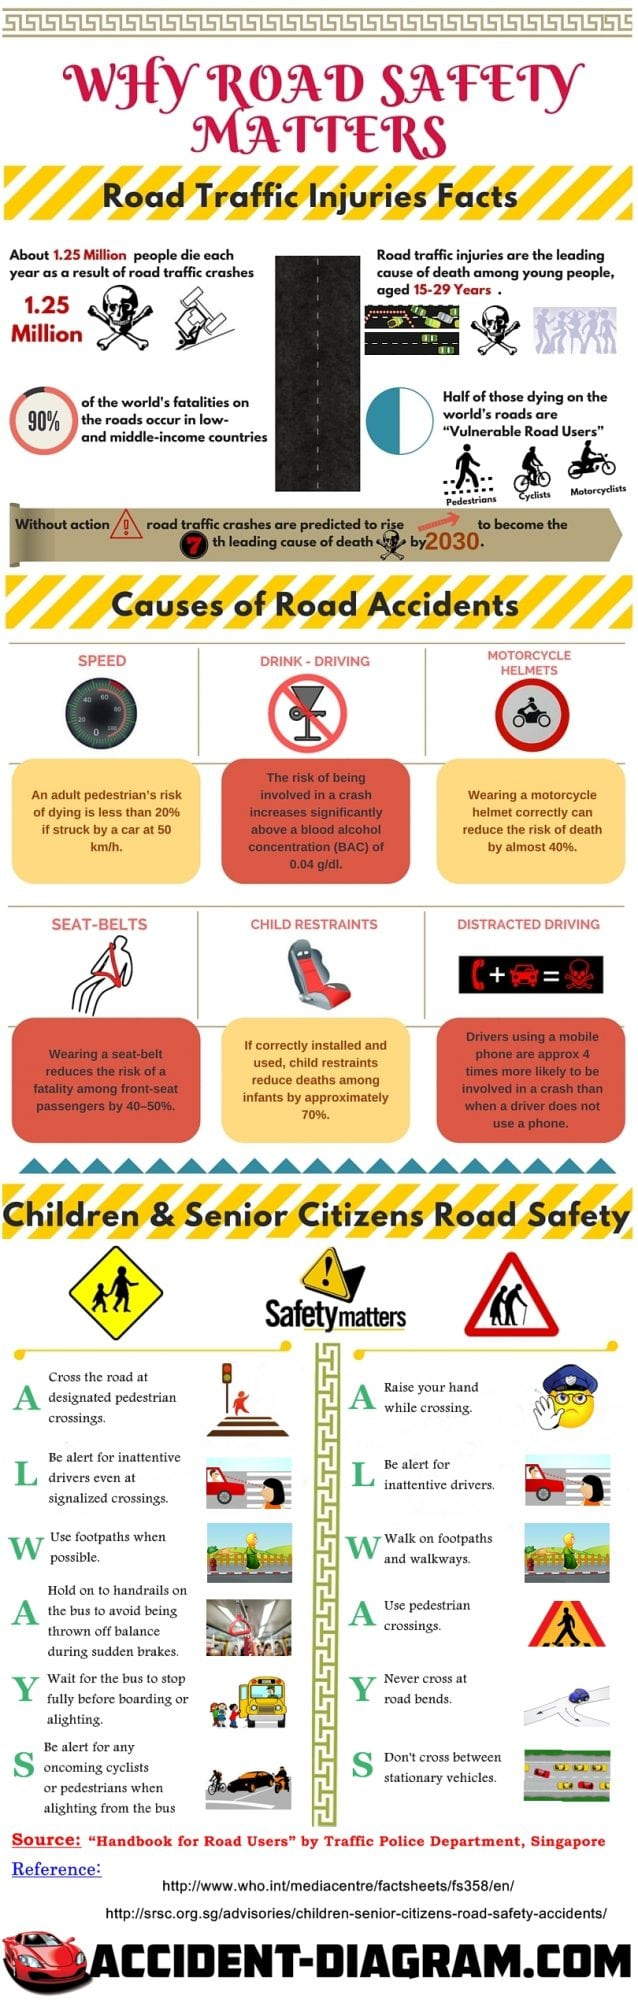 Why Road Safety Matters- An infographic